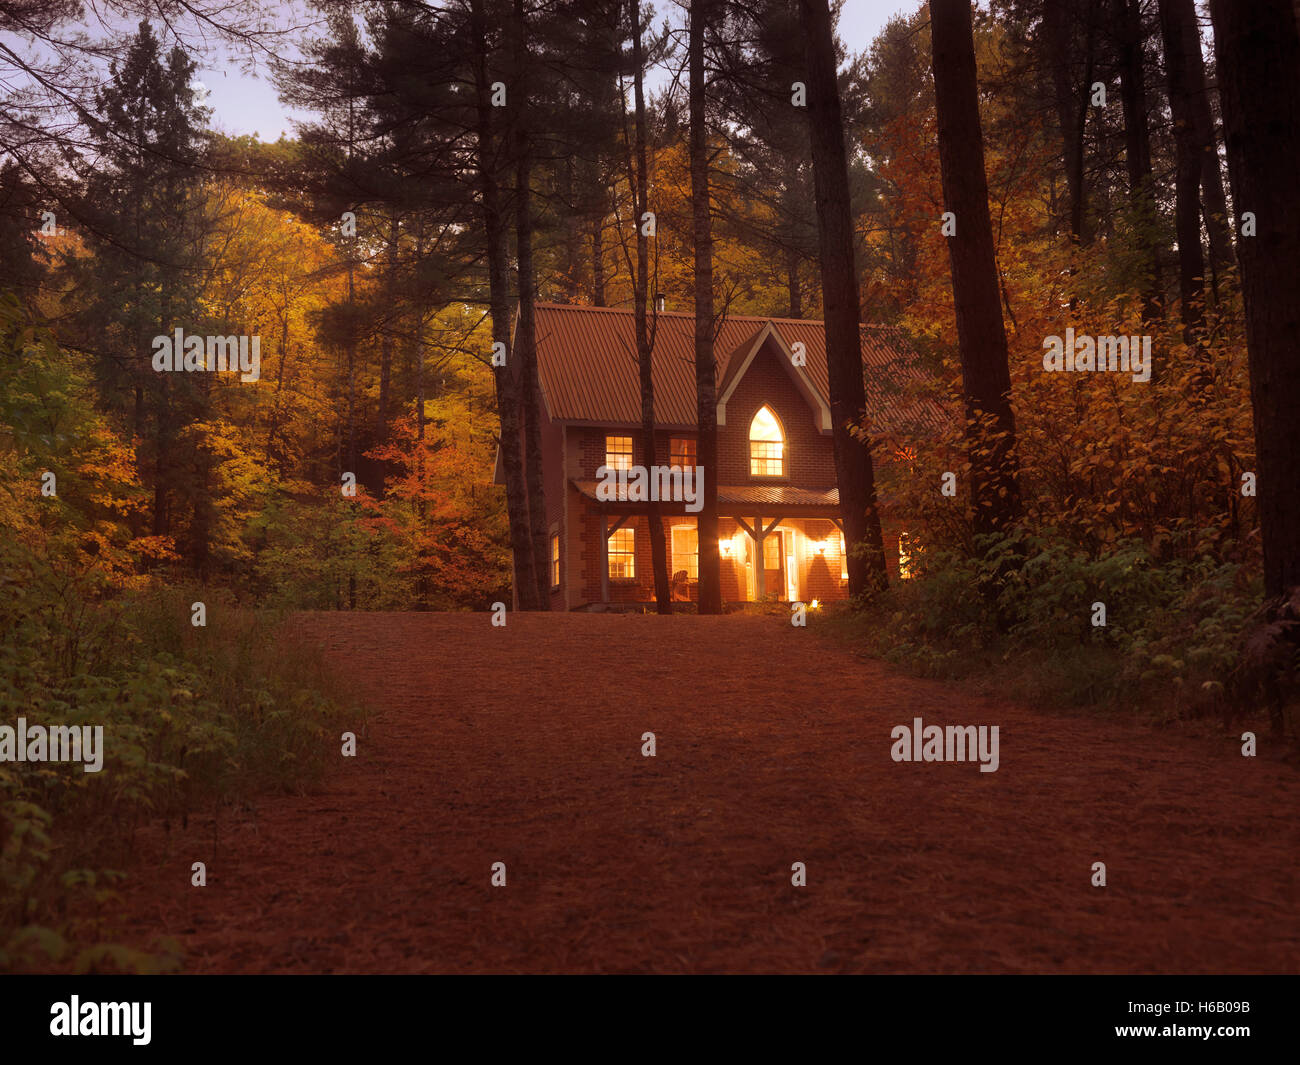 Brick country house or cottage with lights on in colorful autumn evening twilight nature scenery in Muskoka, Ontario, - Stock Image